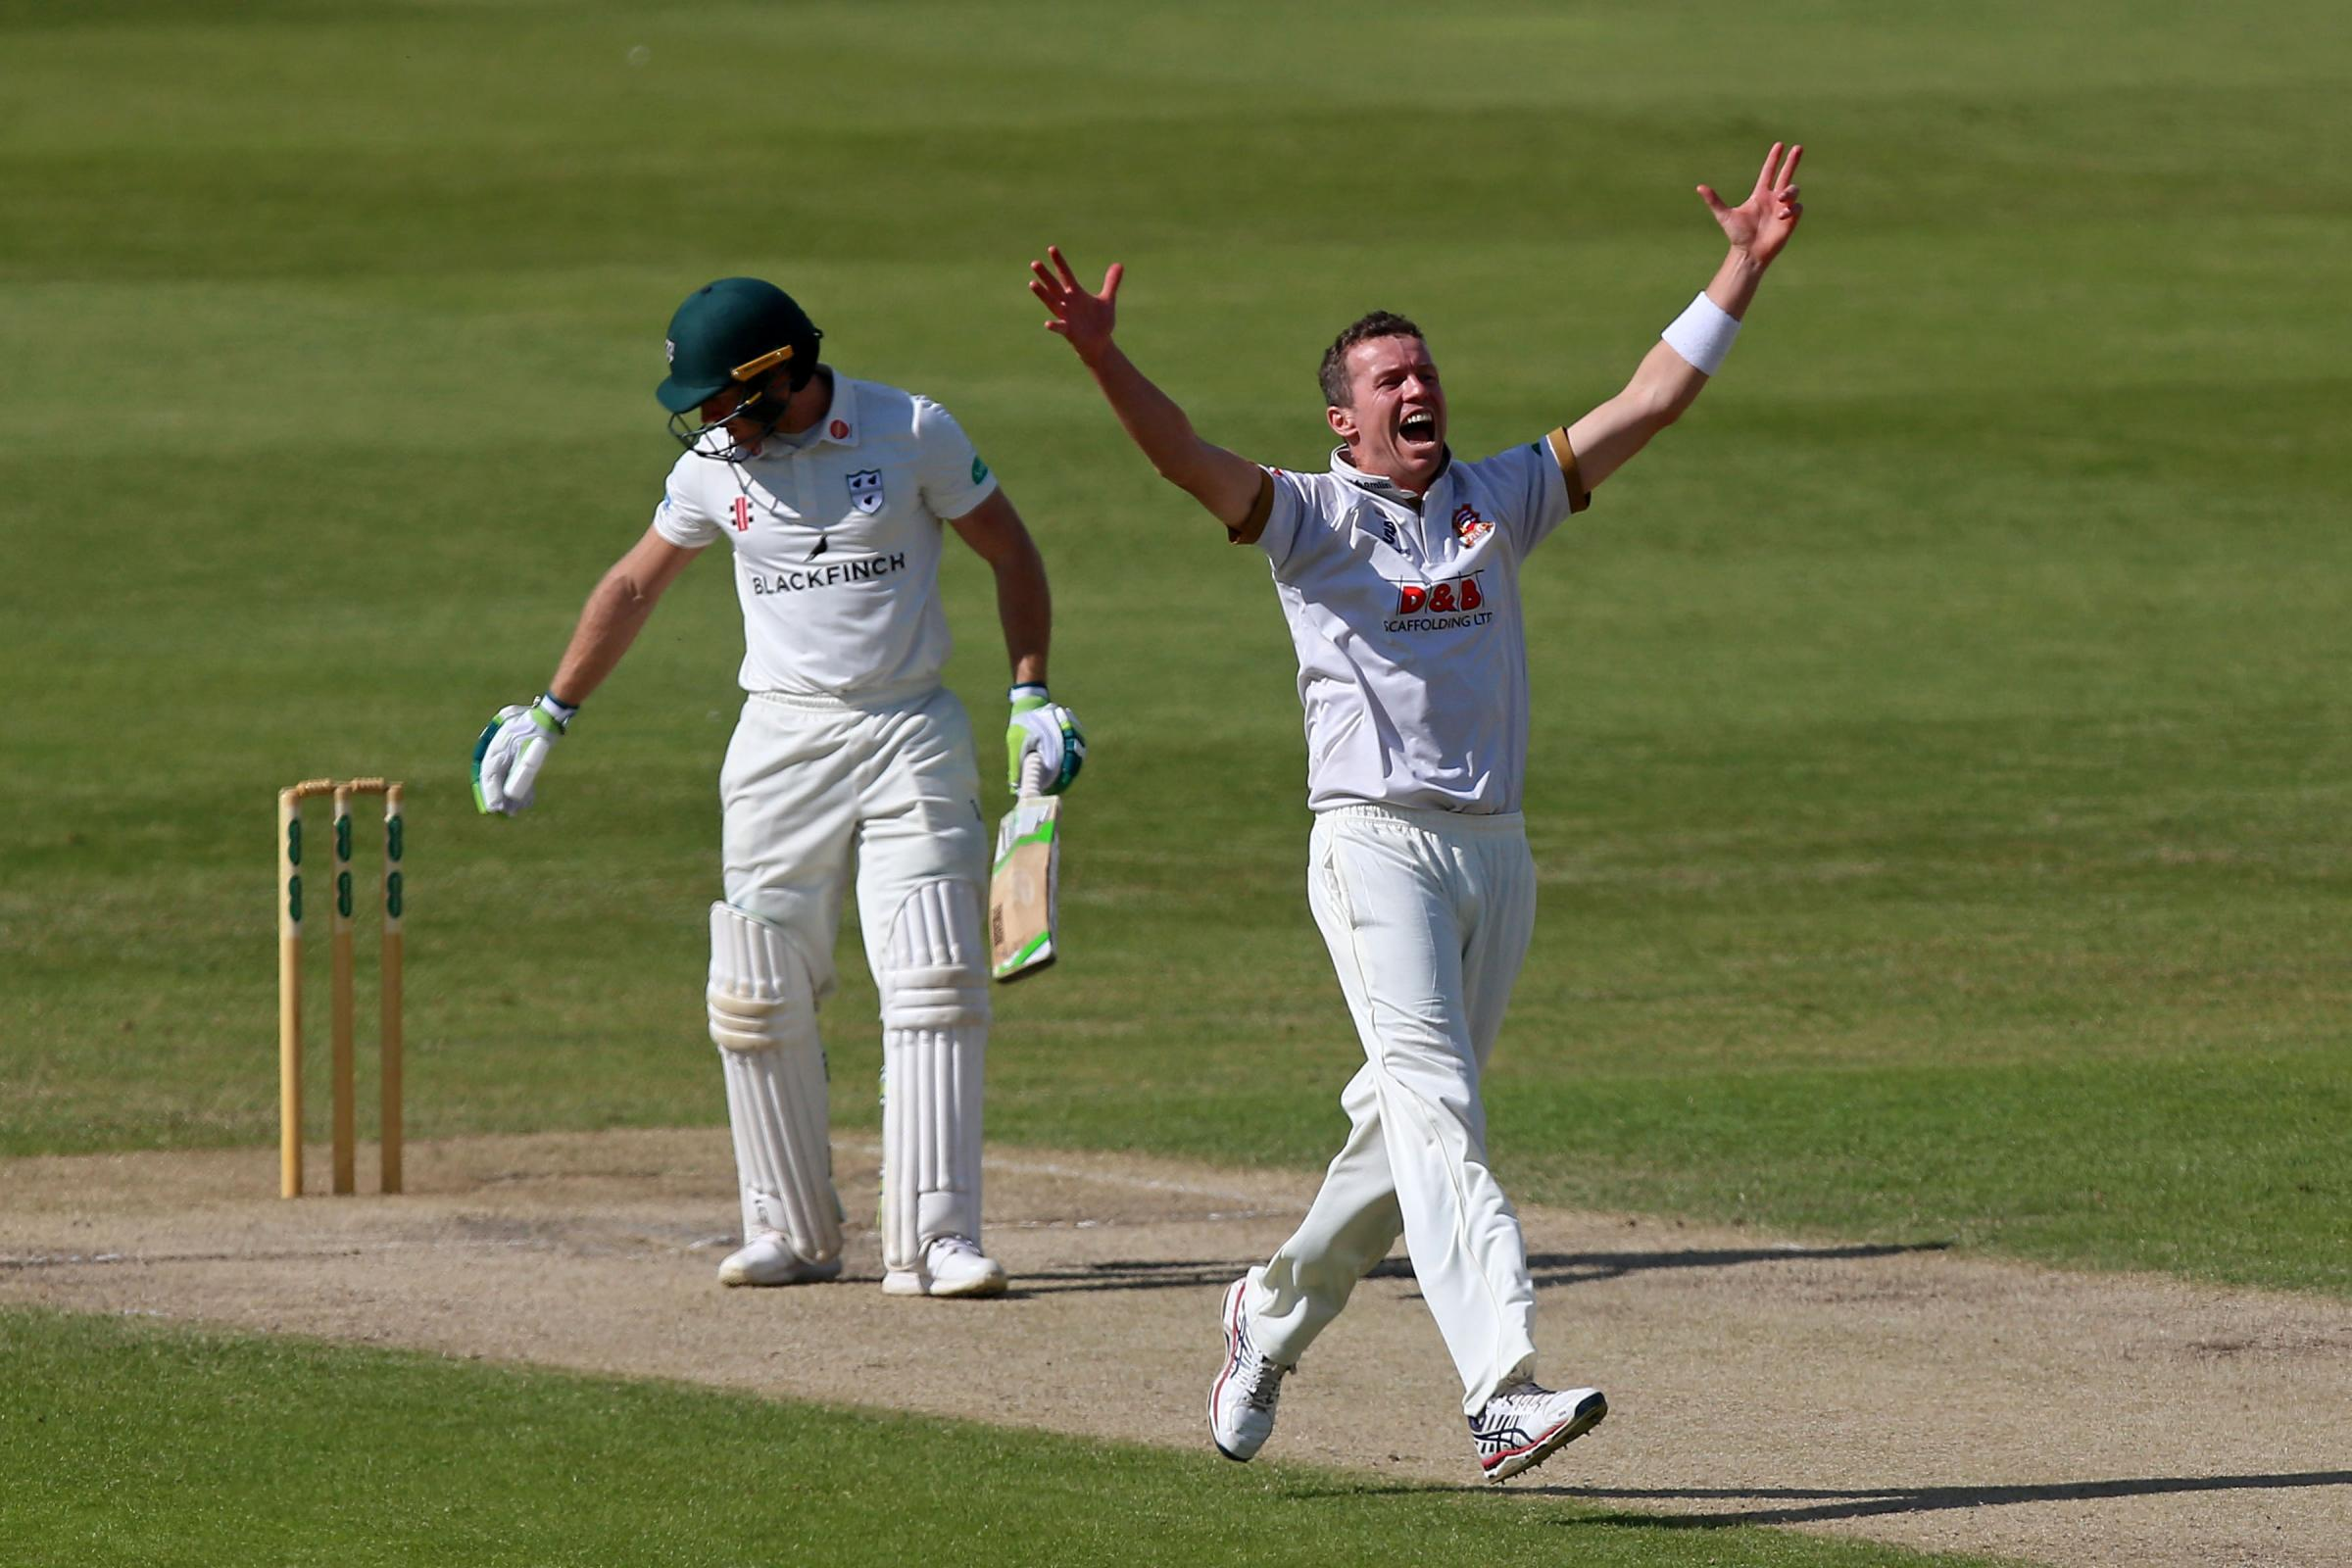 Peter Siddle of Essex celebrates taking the wicket of Ben Cox during Worcestershire CCC vs Essex CCC, Specsavers County Championship Division 1 Cricket at New Road on 13th May 2018.